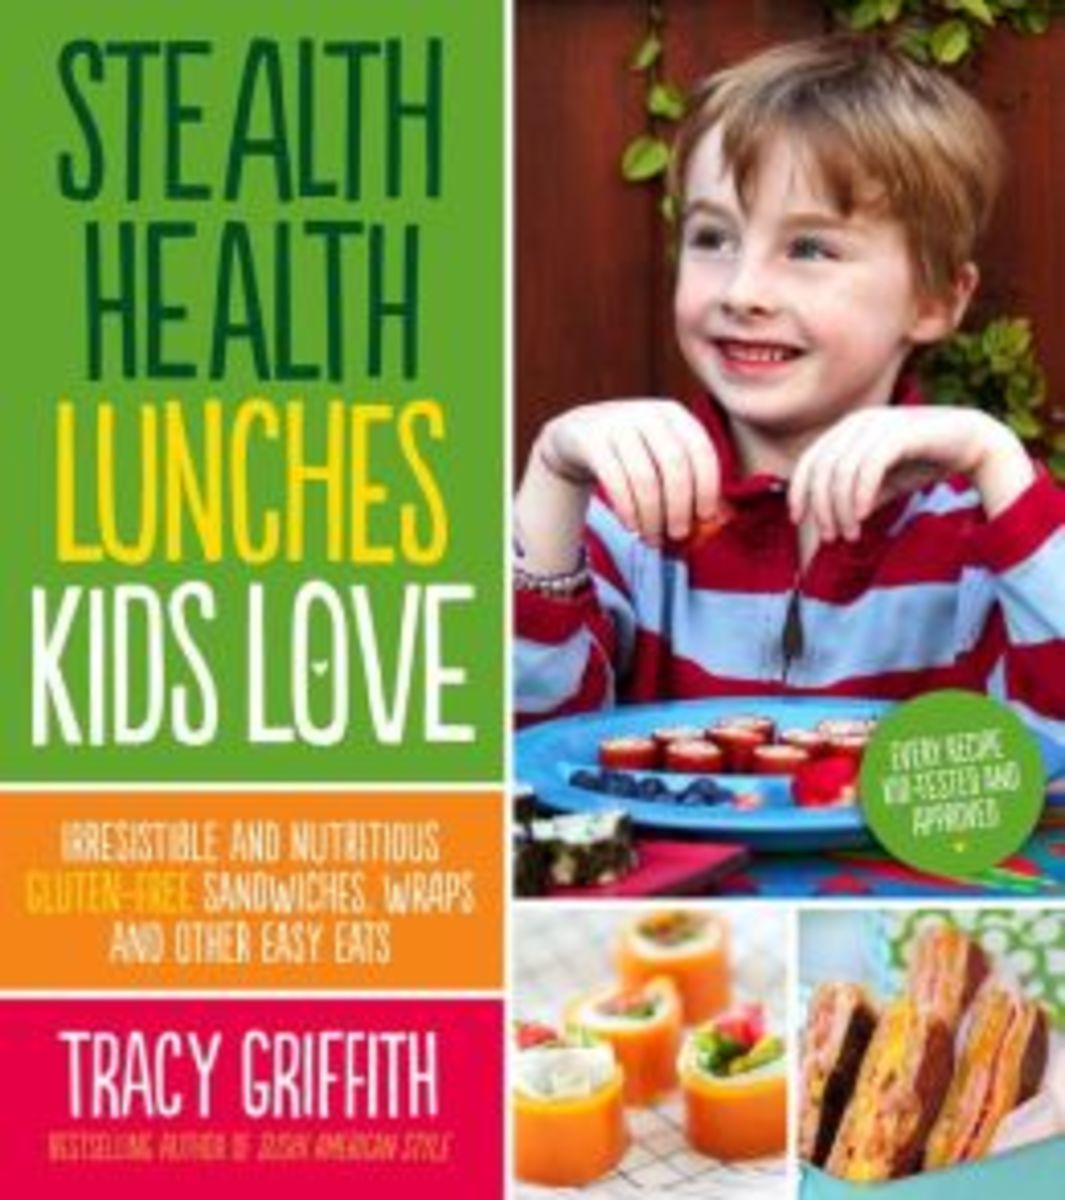 Stealth Health Lunches Kids Love: Irresistible and Nutritious Gluten-Free Sandwiches, Wraps, and Other Easy Eats, Stealth Health Lunches Kids Love: Irresistible and Nutritious Gluten-Free Sandwiches, Wraps, and Other Easy Eats Review